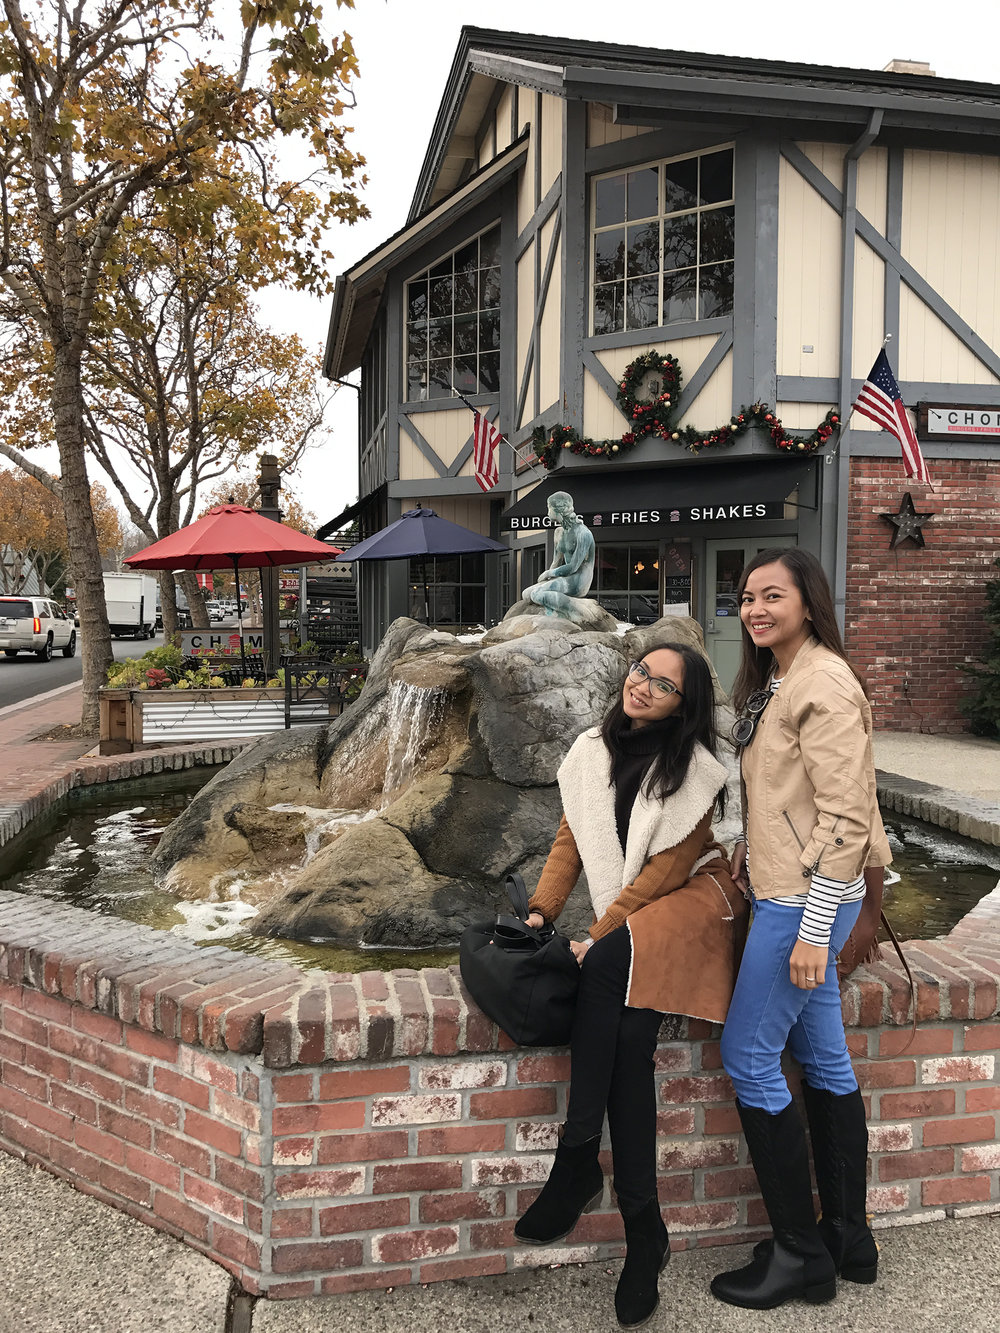 With my sis beside a replica of Denmark's The Little Mermaid statue in Solvang. The statue is based on a fairy tale written by Danish author Hans Christian Andersen.